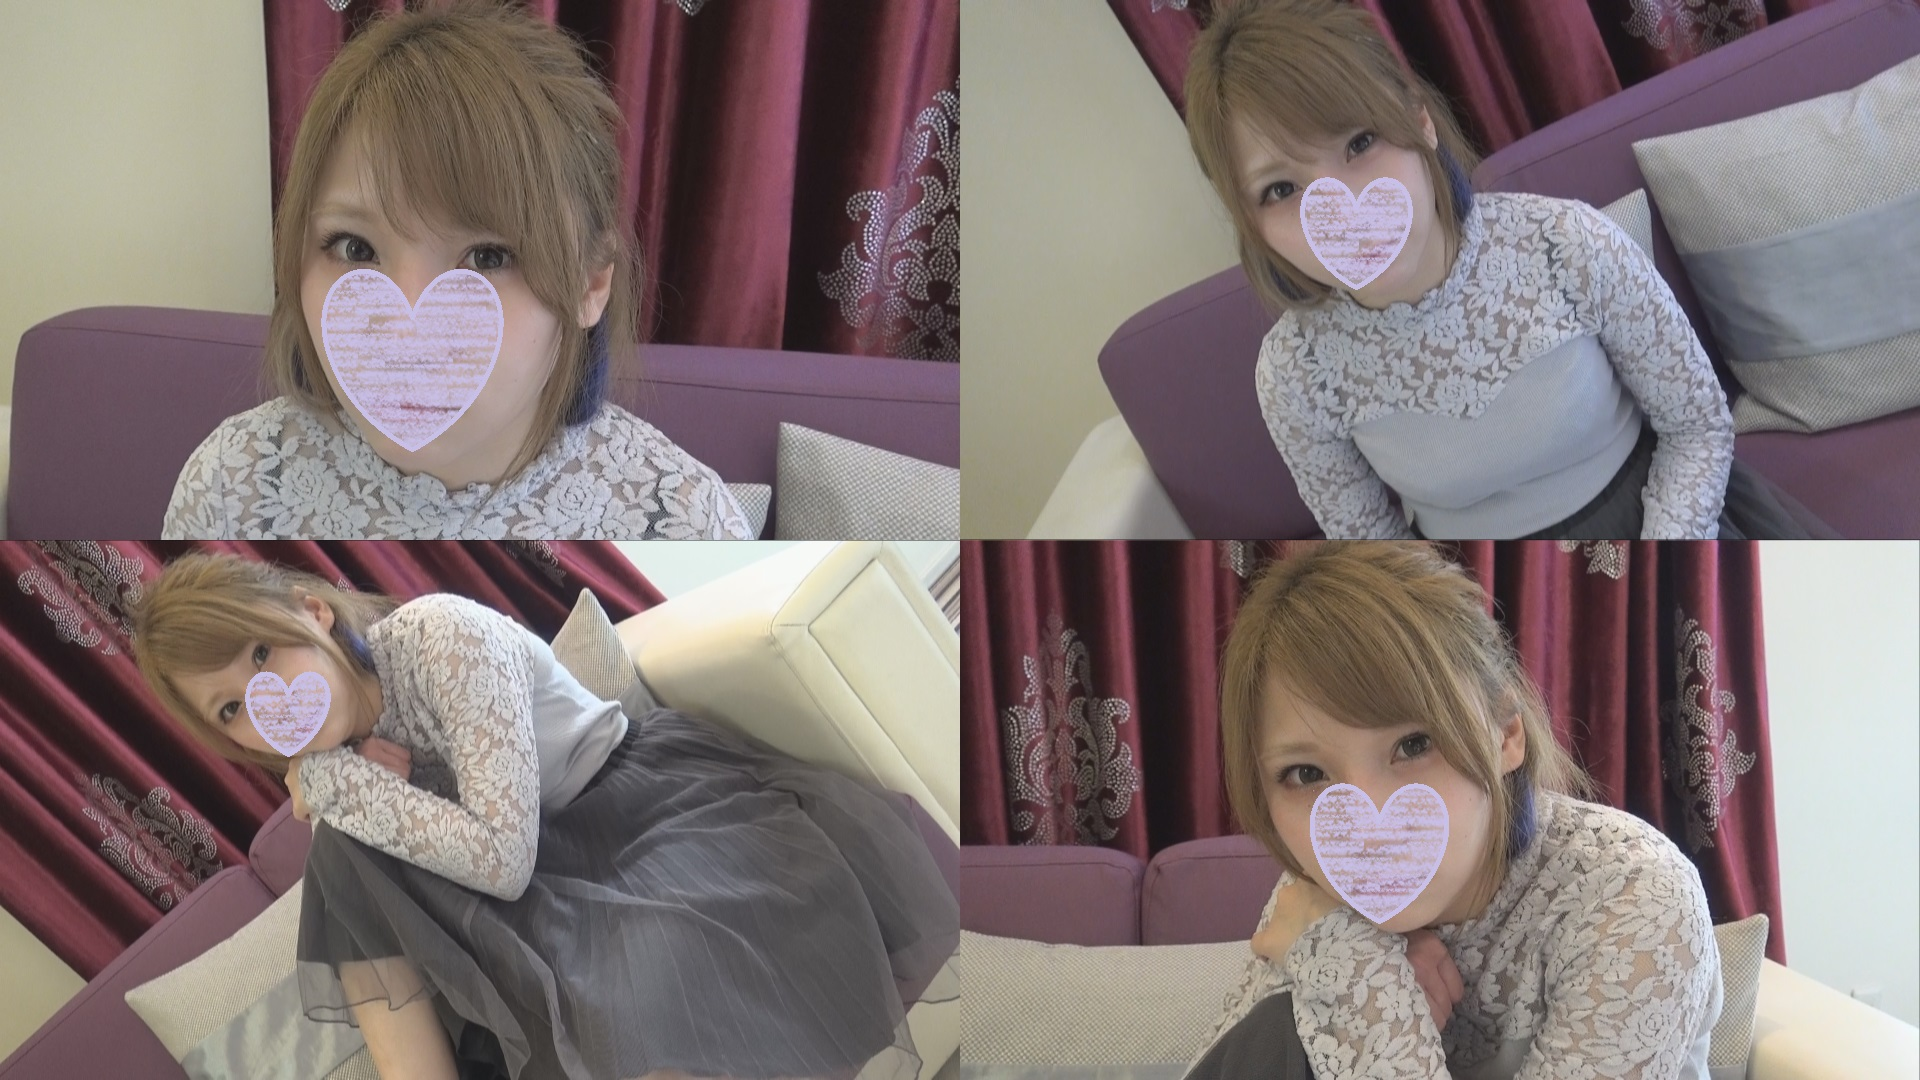 FC2 PPV 1363556 Mafuyu 22 years old Naturally Odorable Band Vocal Female college student mass cum shot